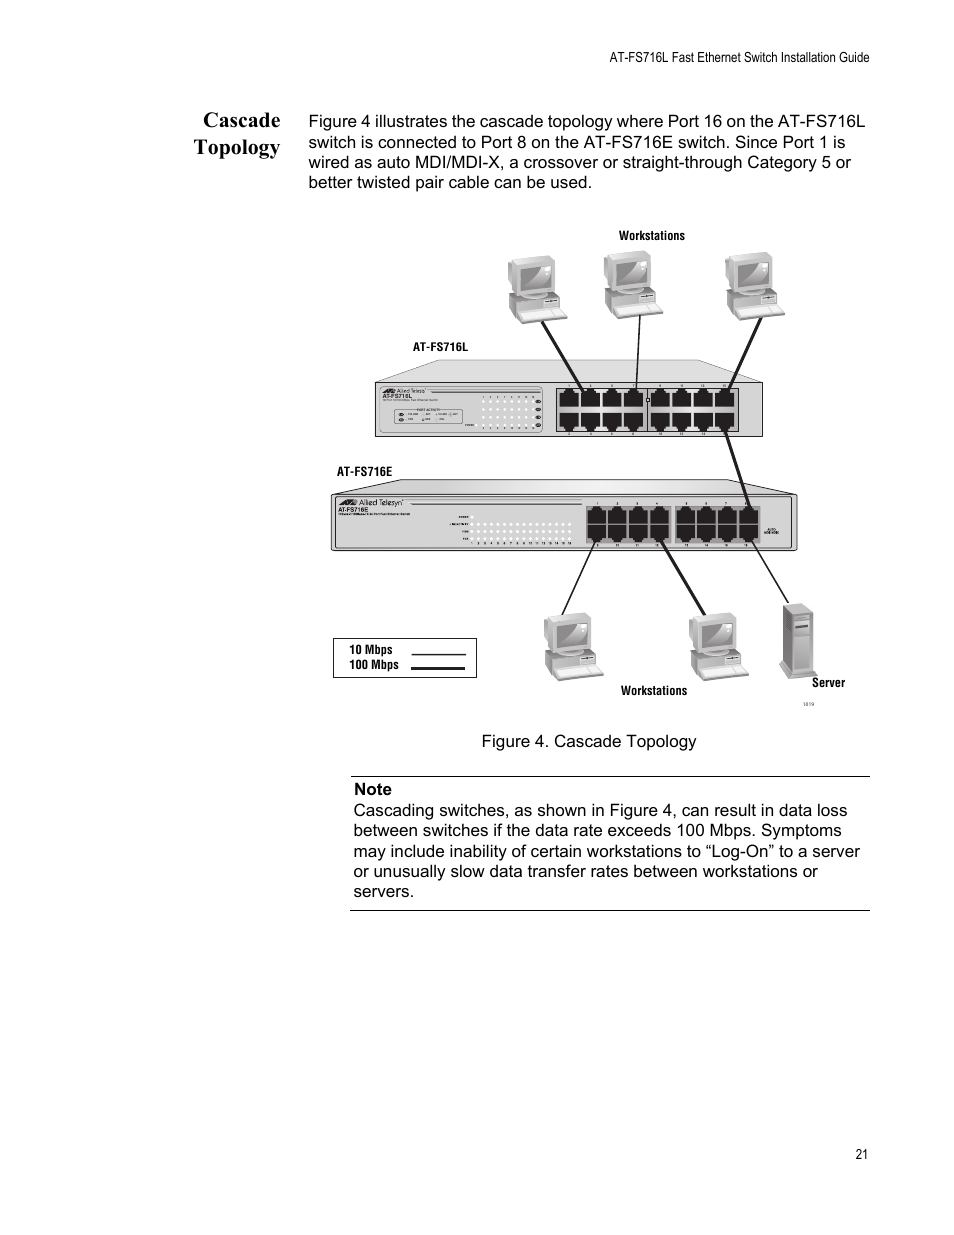 Cascade Topology At Fs716e Workstations Server Figure 4 Wiring Diagram For An Ethernet Crossover Cable Fs716l Allied Telesis User Manual Page 21 62